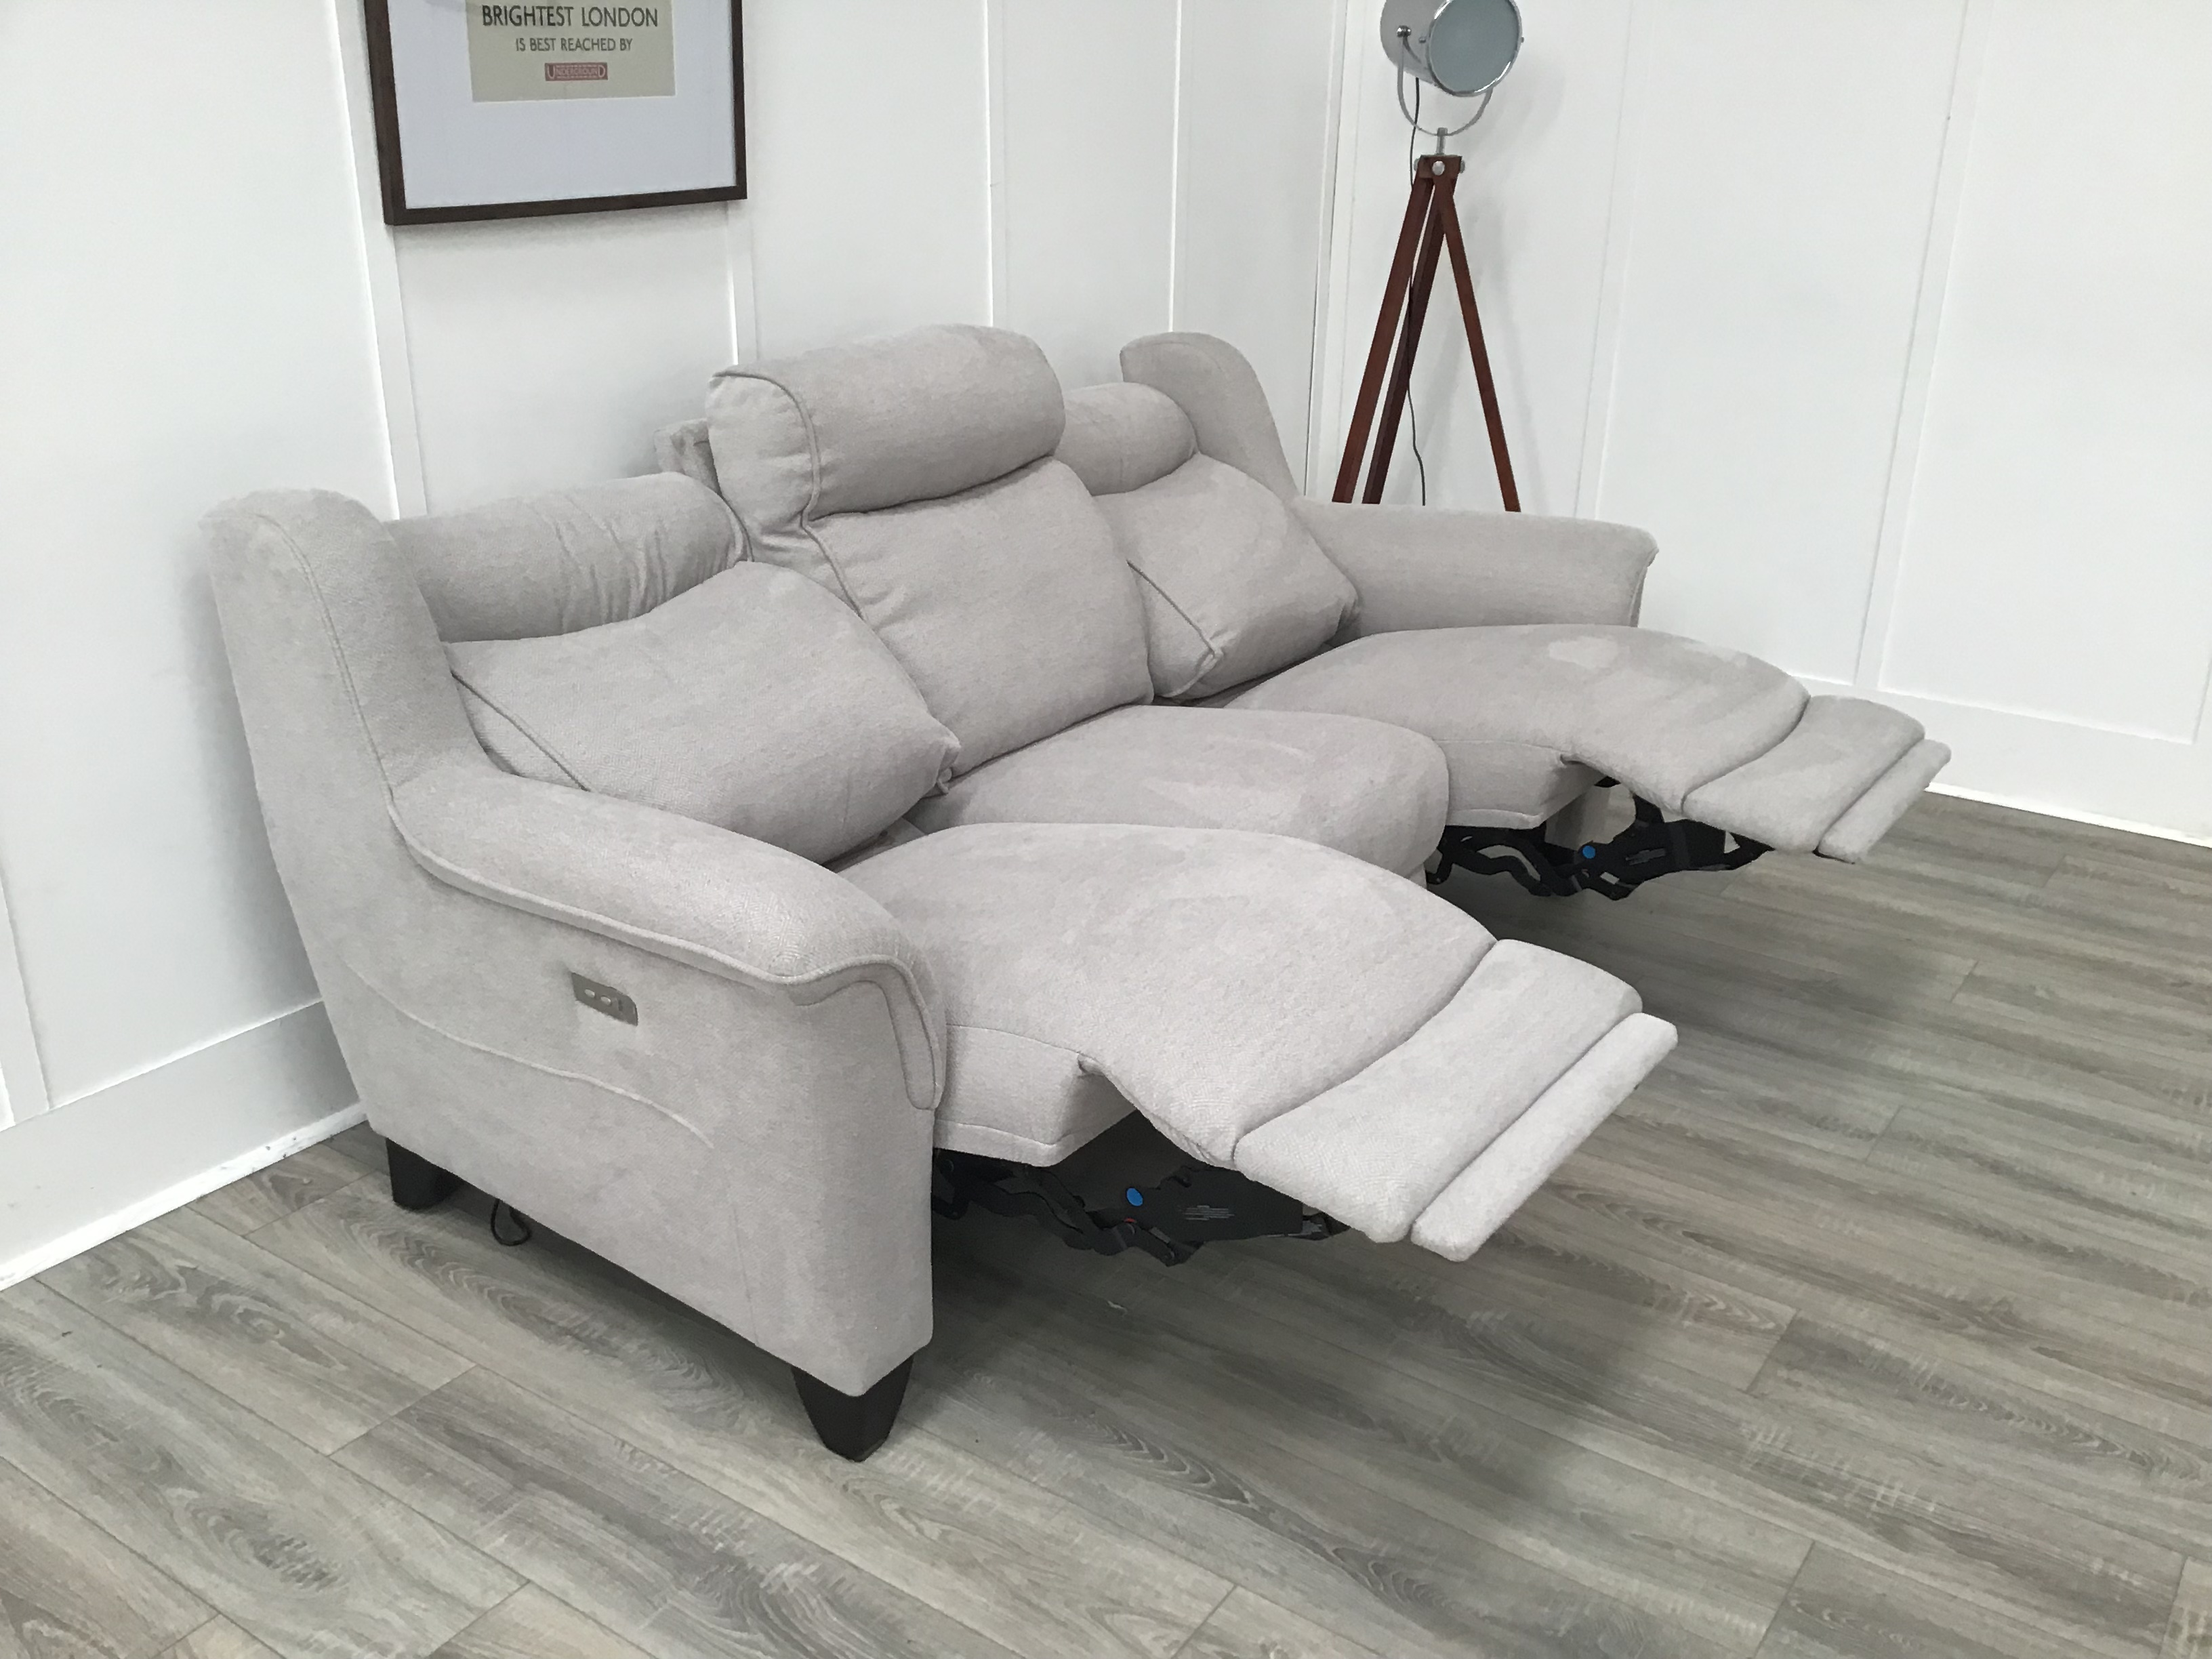 Parker Knoll 3 Seat Seater Electric Reclining Sofa Fabric